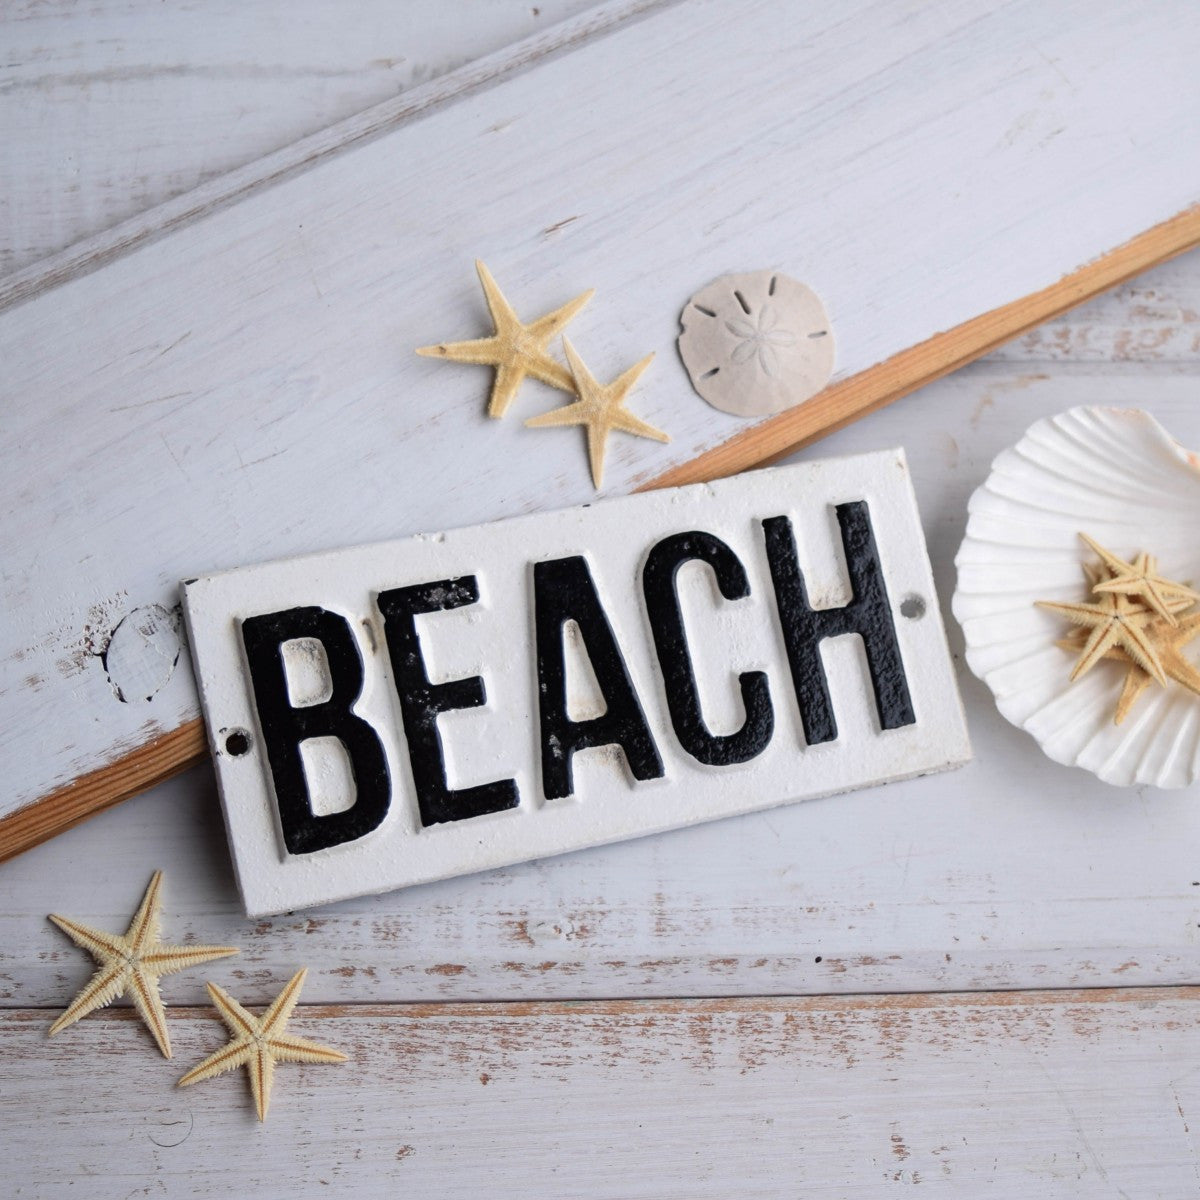 Cast Iron Beach sign